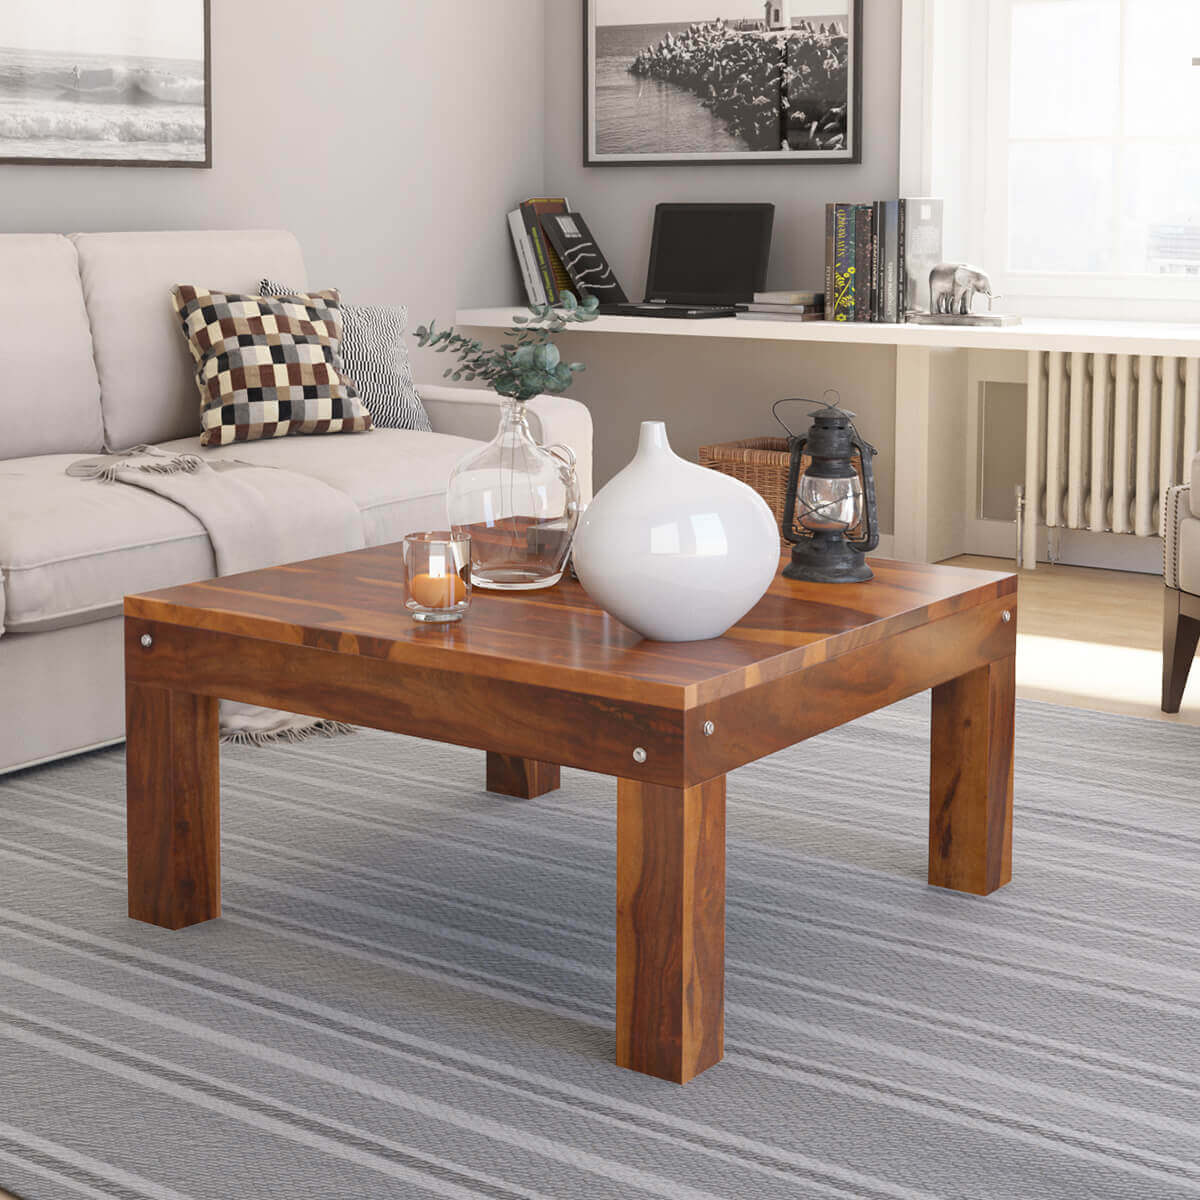 Patet Contemporary Rustic Solid Wood Cocktail Square Coffee Table